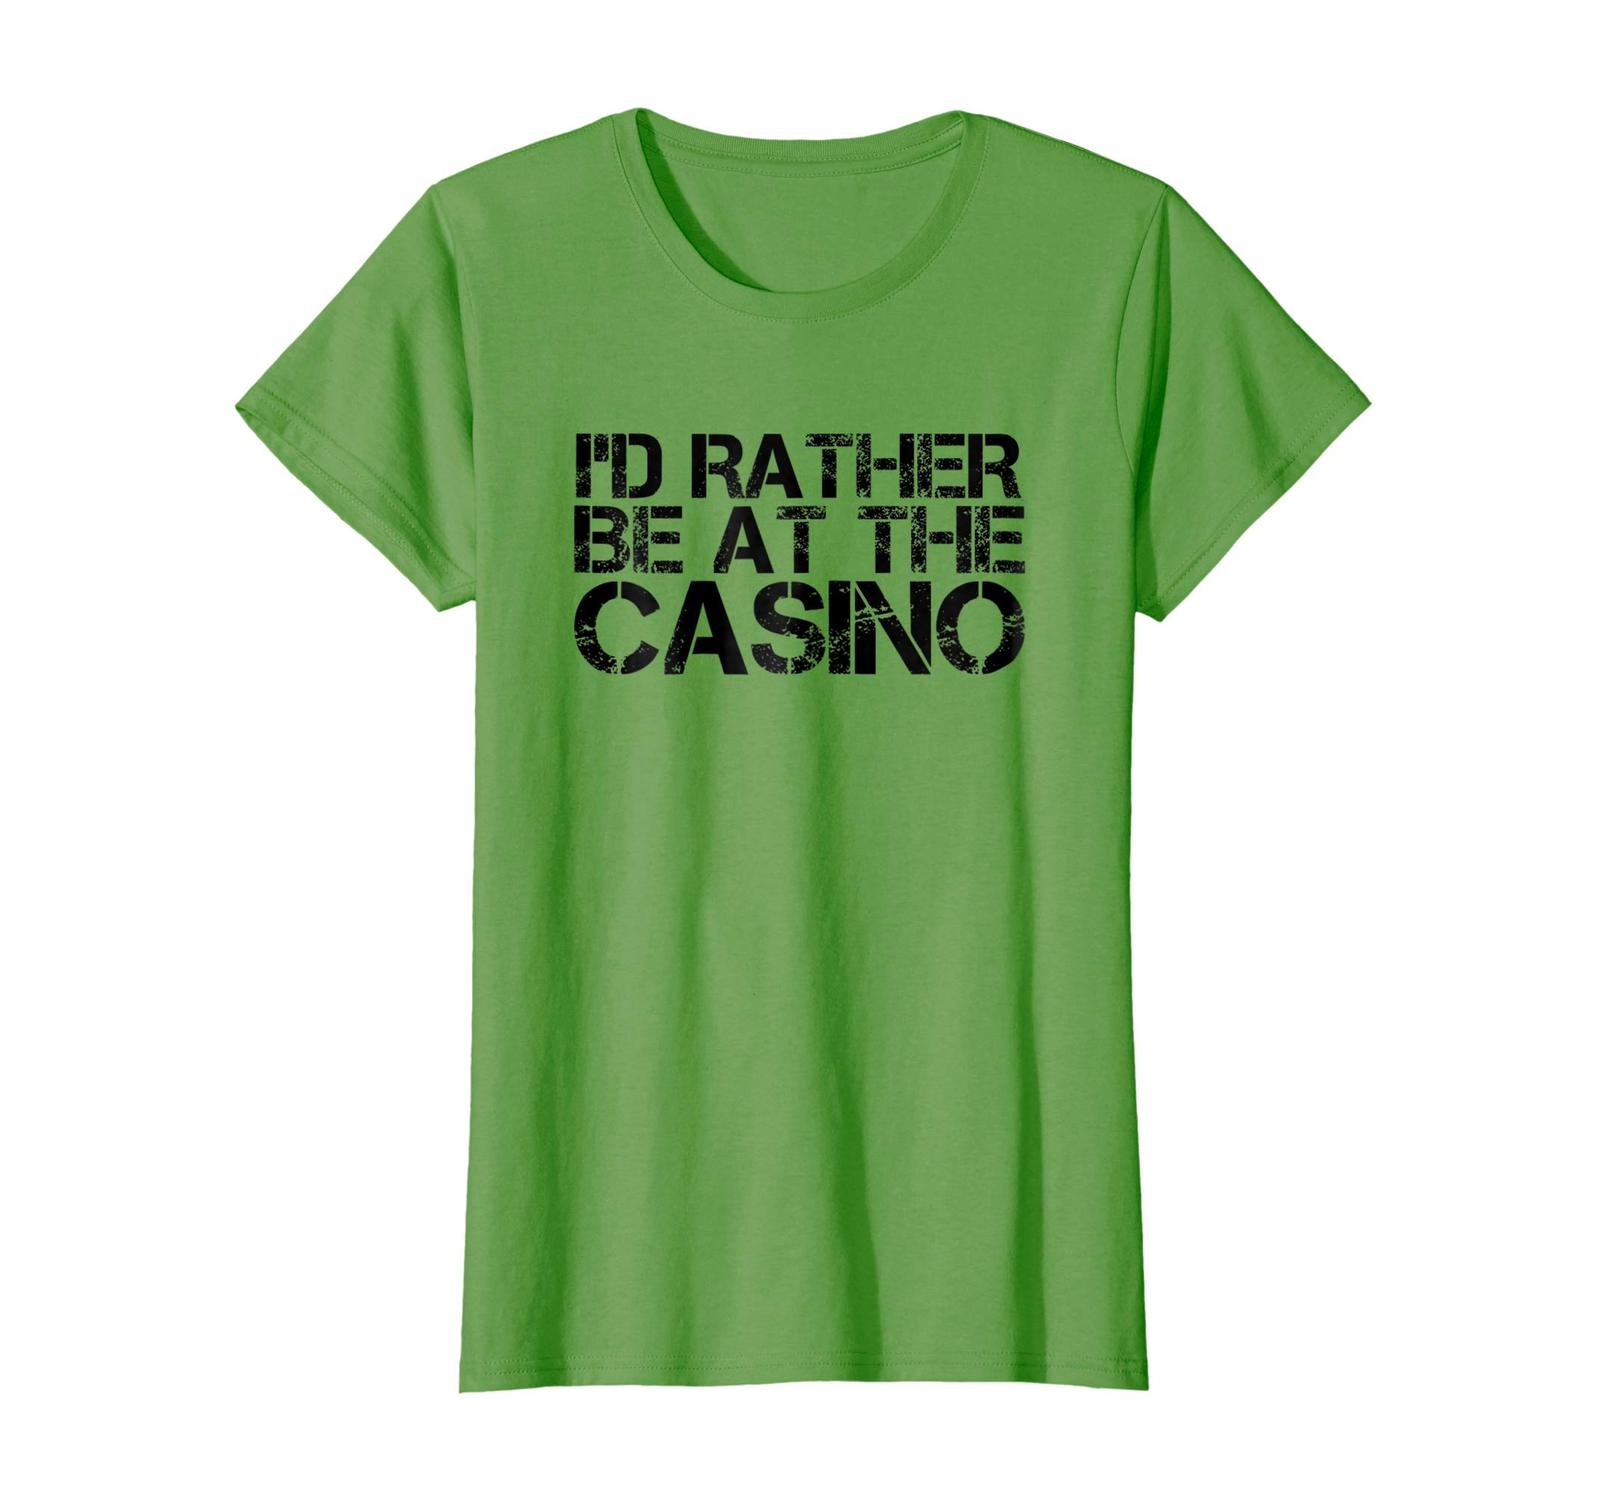 Brother Shirts - I'D RATHER BE AT THE CASINO Shirt Funny Vegas Gift Idea Wowen